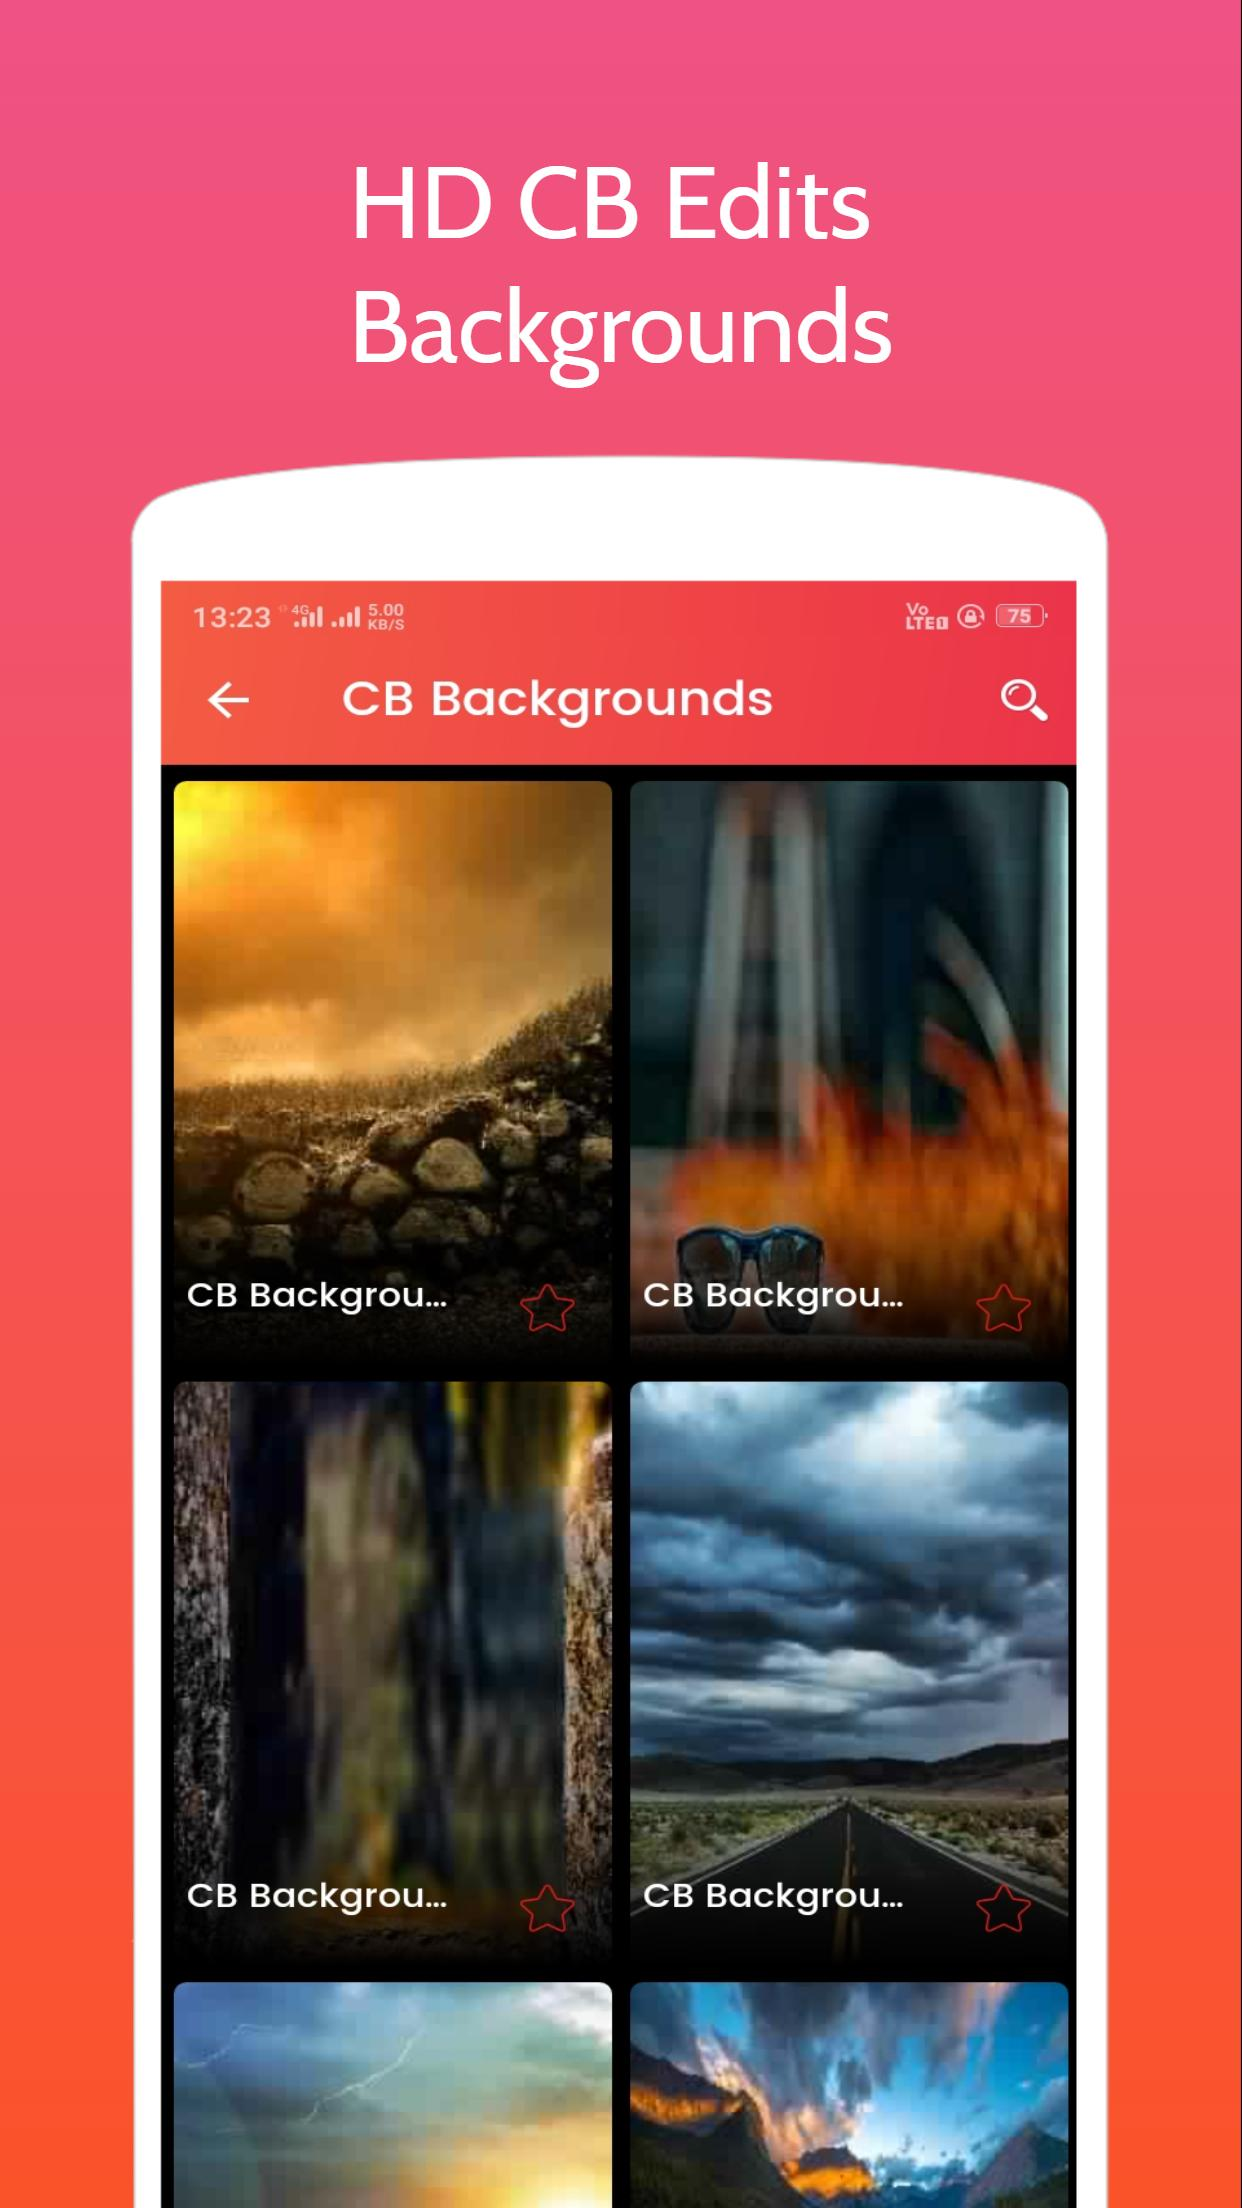 New CB Edits Background 2019 for Android - APK Download